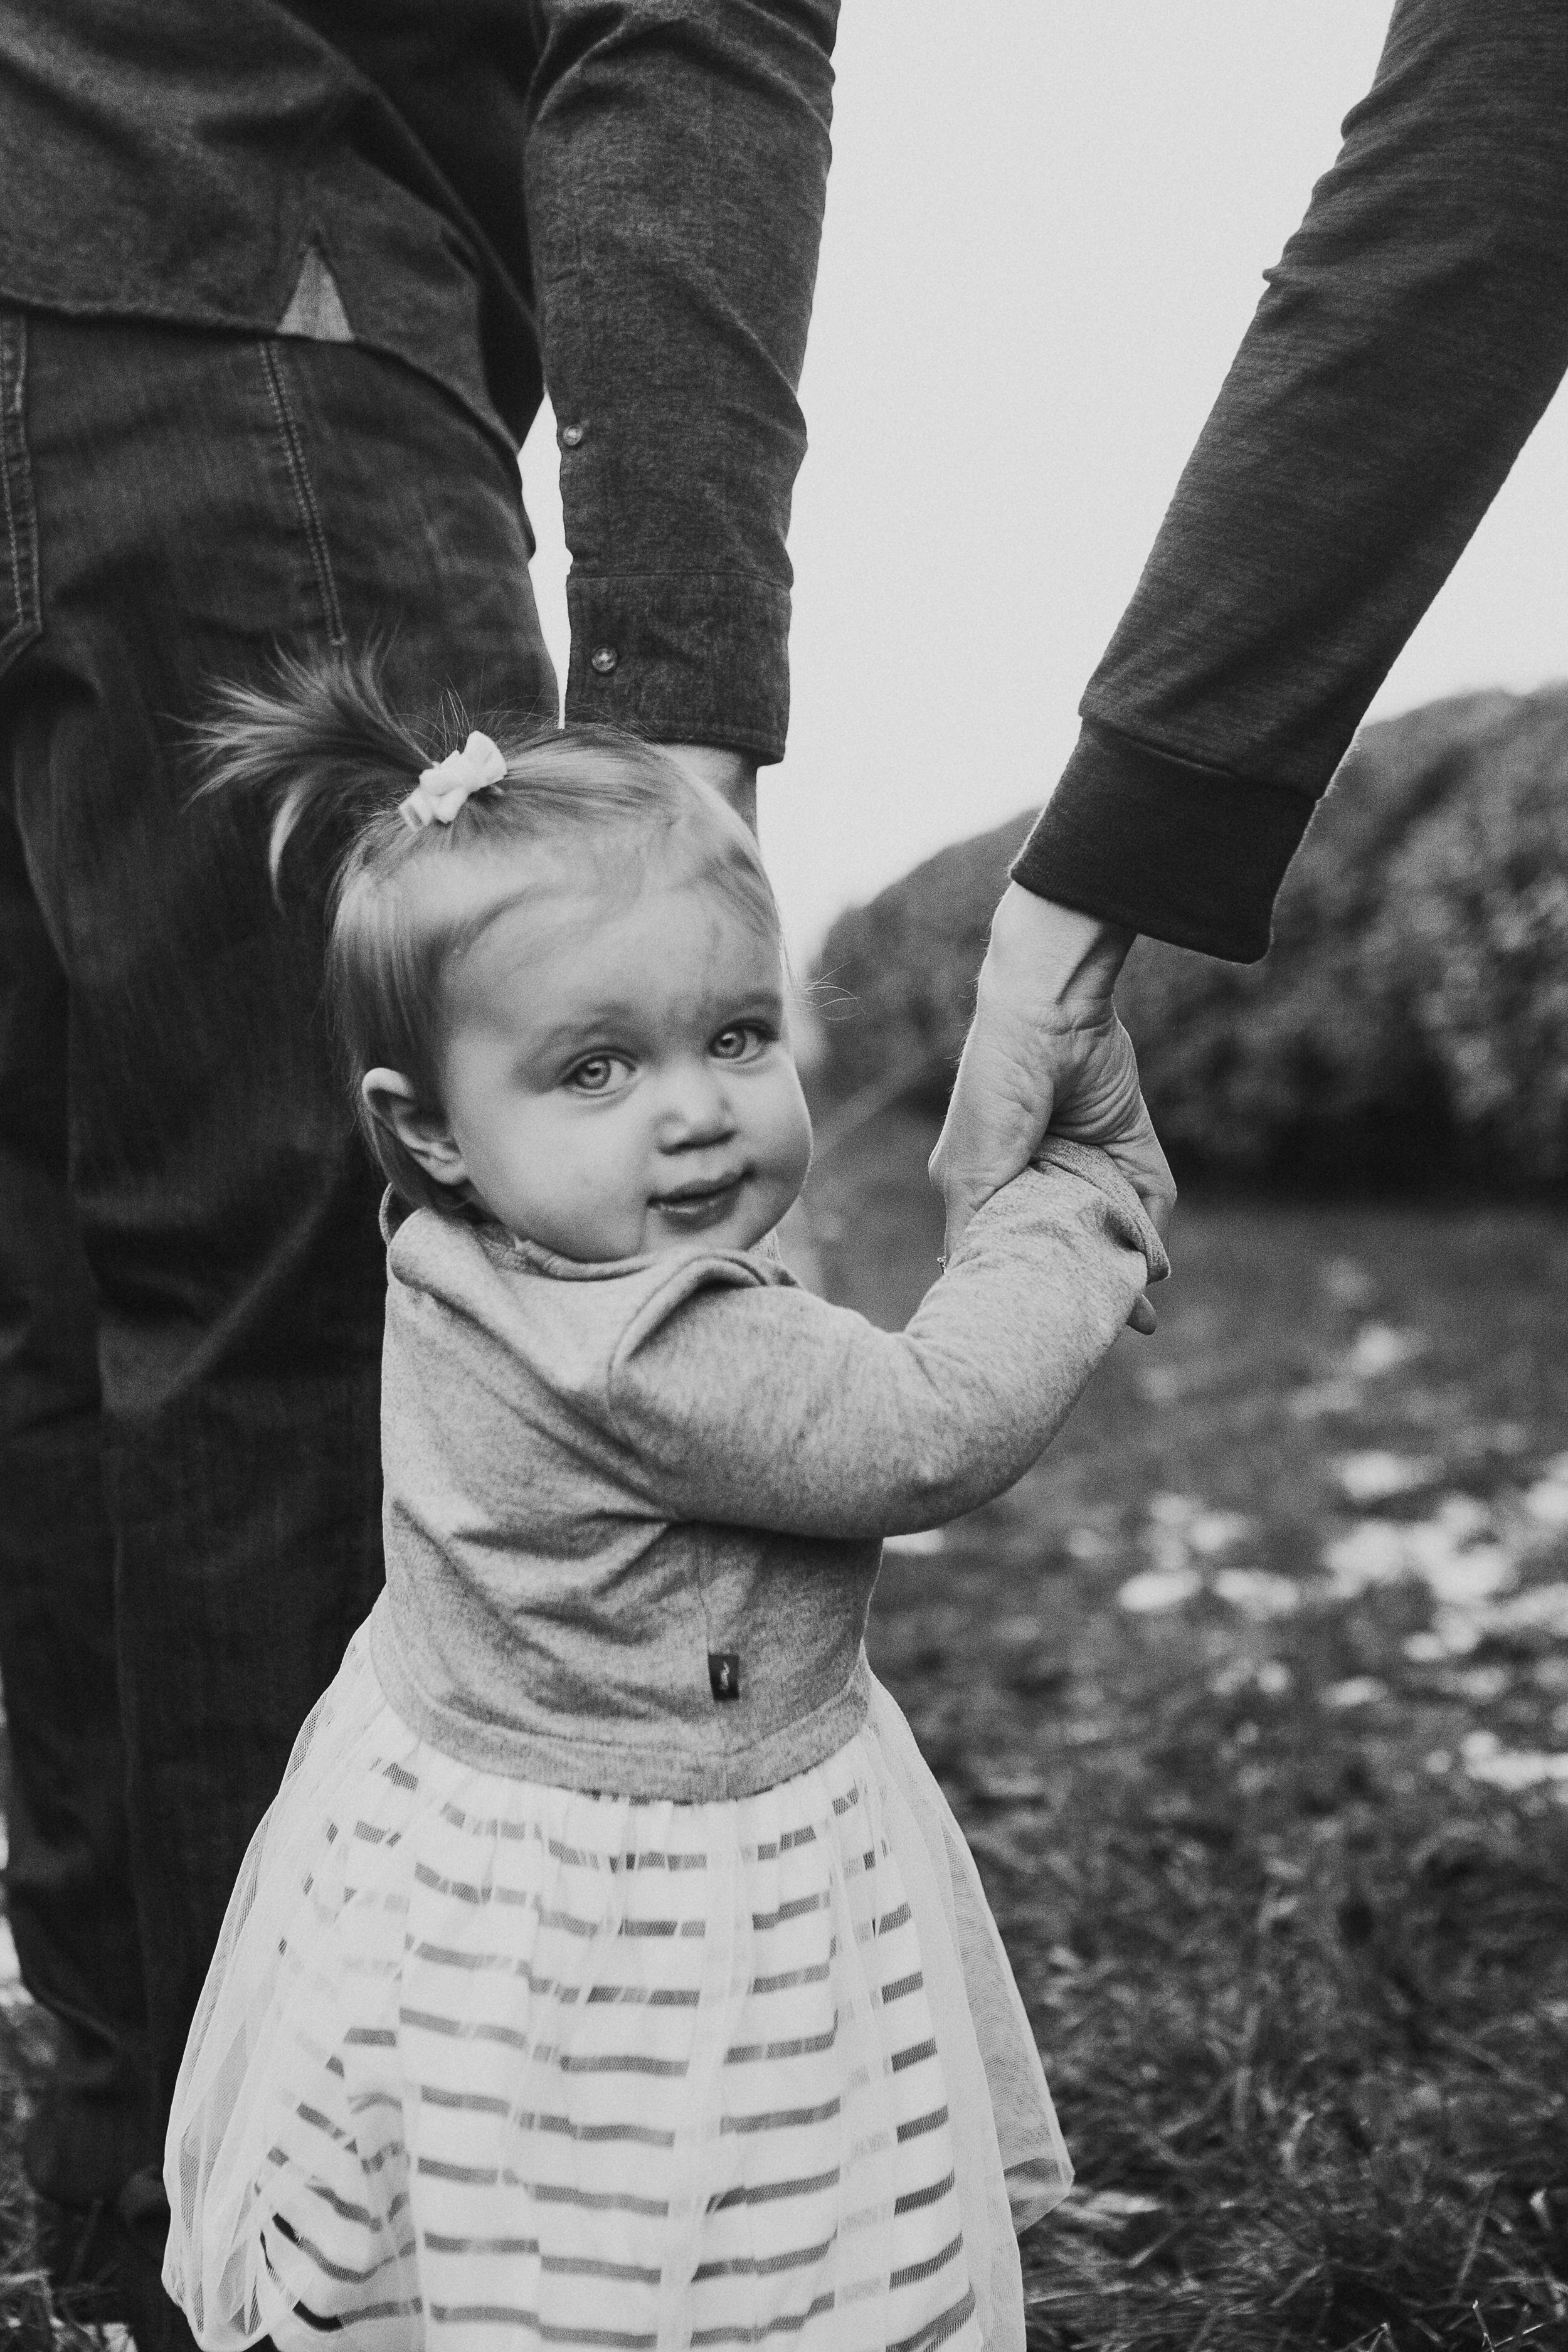 black and white toddler portrait hold hands Lifestyle Documentary Fall Autumn Sunset Golden Hour Family toddler first birthday cake smash Beaverdam Run Broadlands Loudoun Virginia Marti Austin Photography